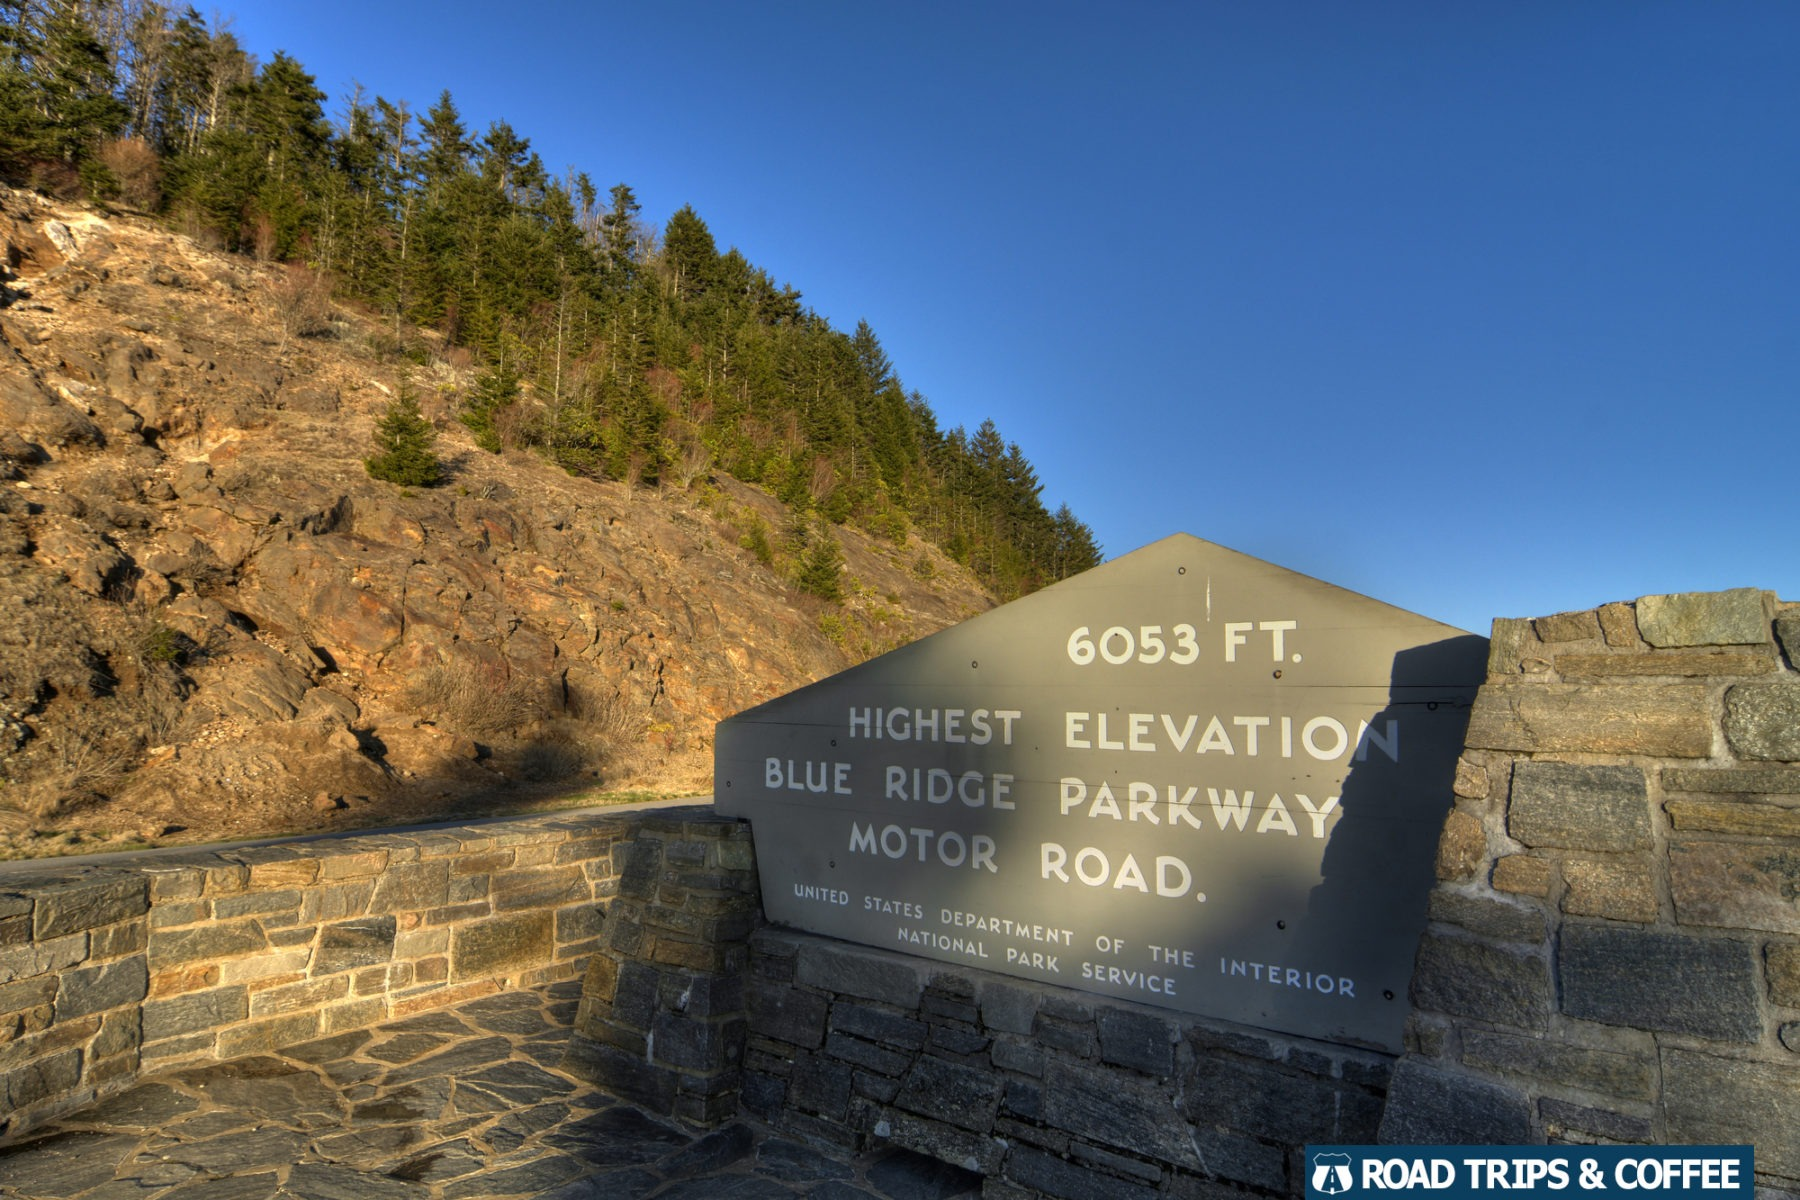 The sign marking the highest elevation at Richland Balsam on the Blue Ridge Parkway in North Carolina